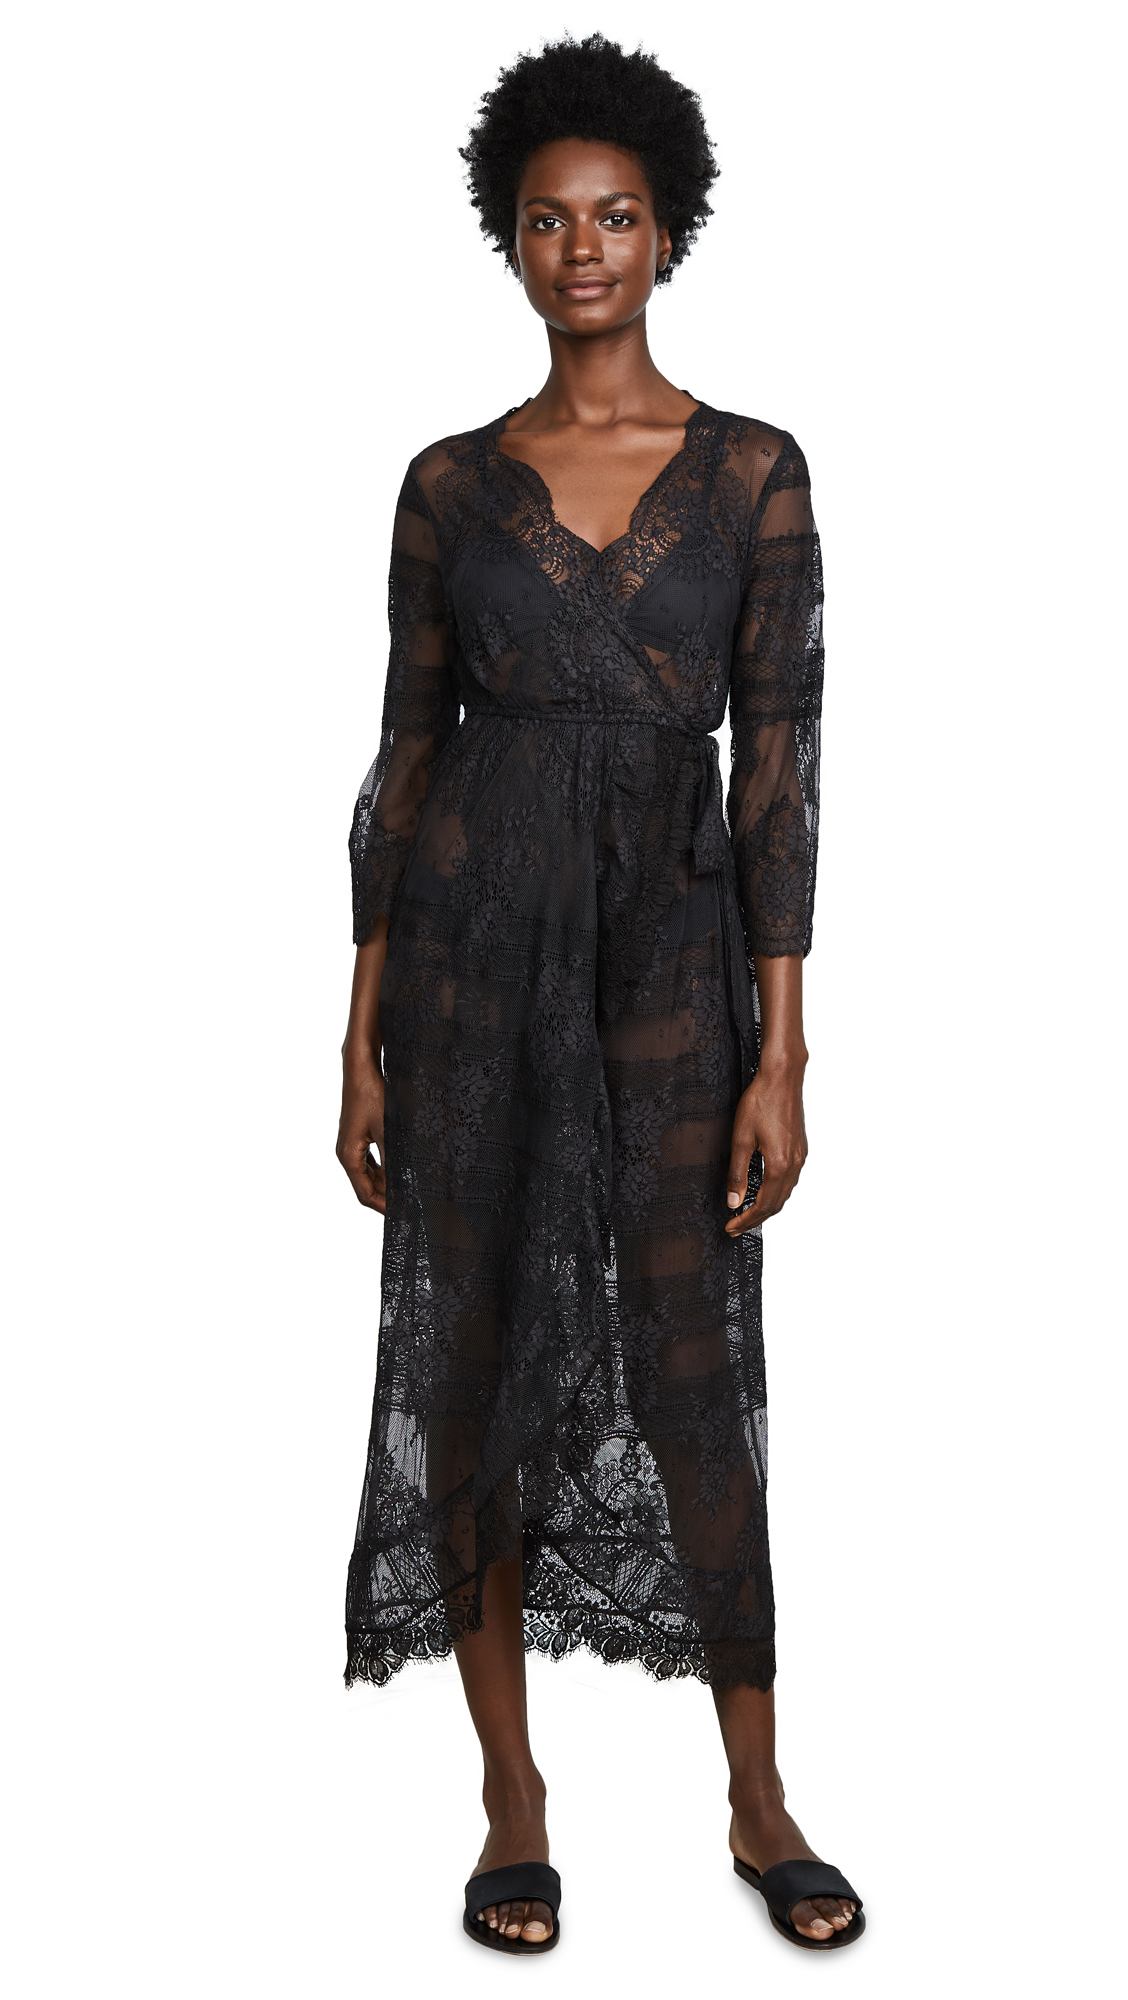 TEMPTATION POSITANO FLORES WRAP DRESS